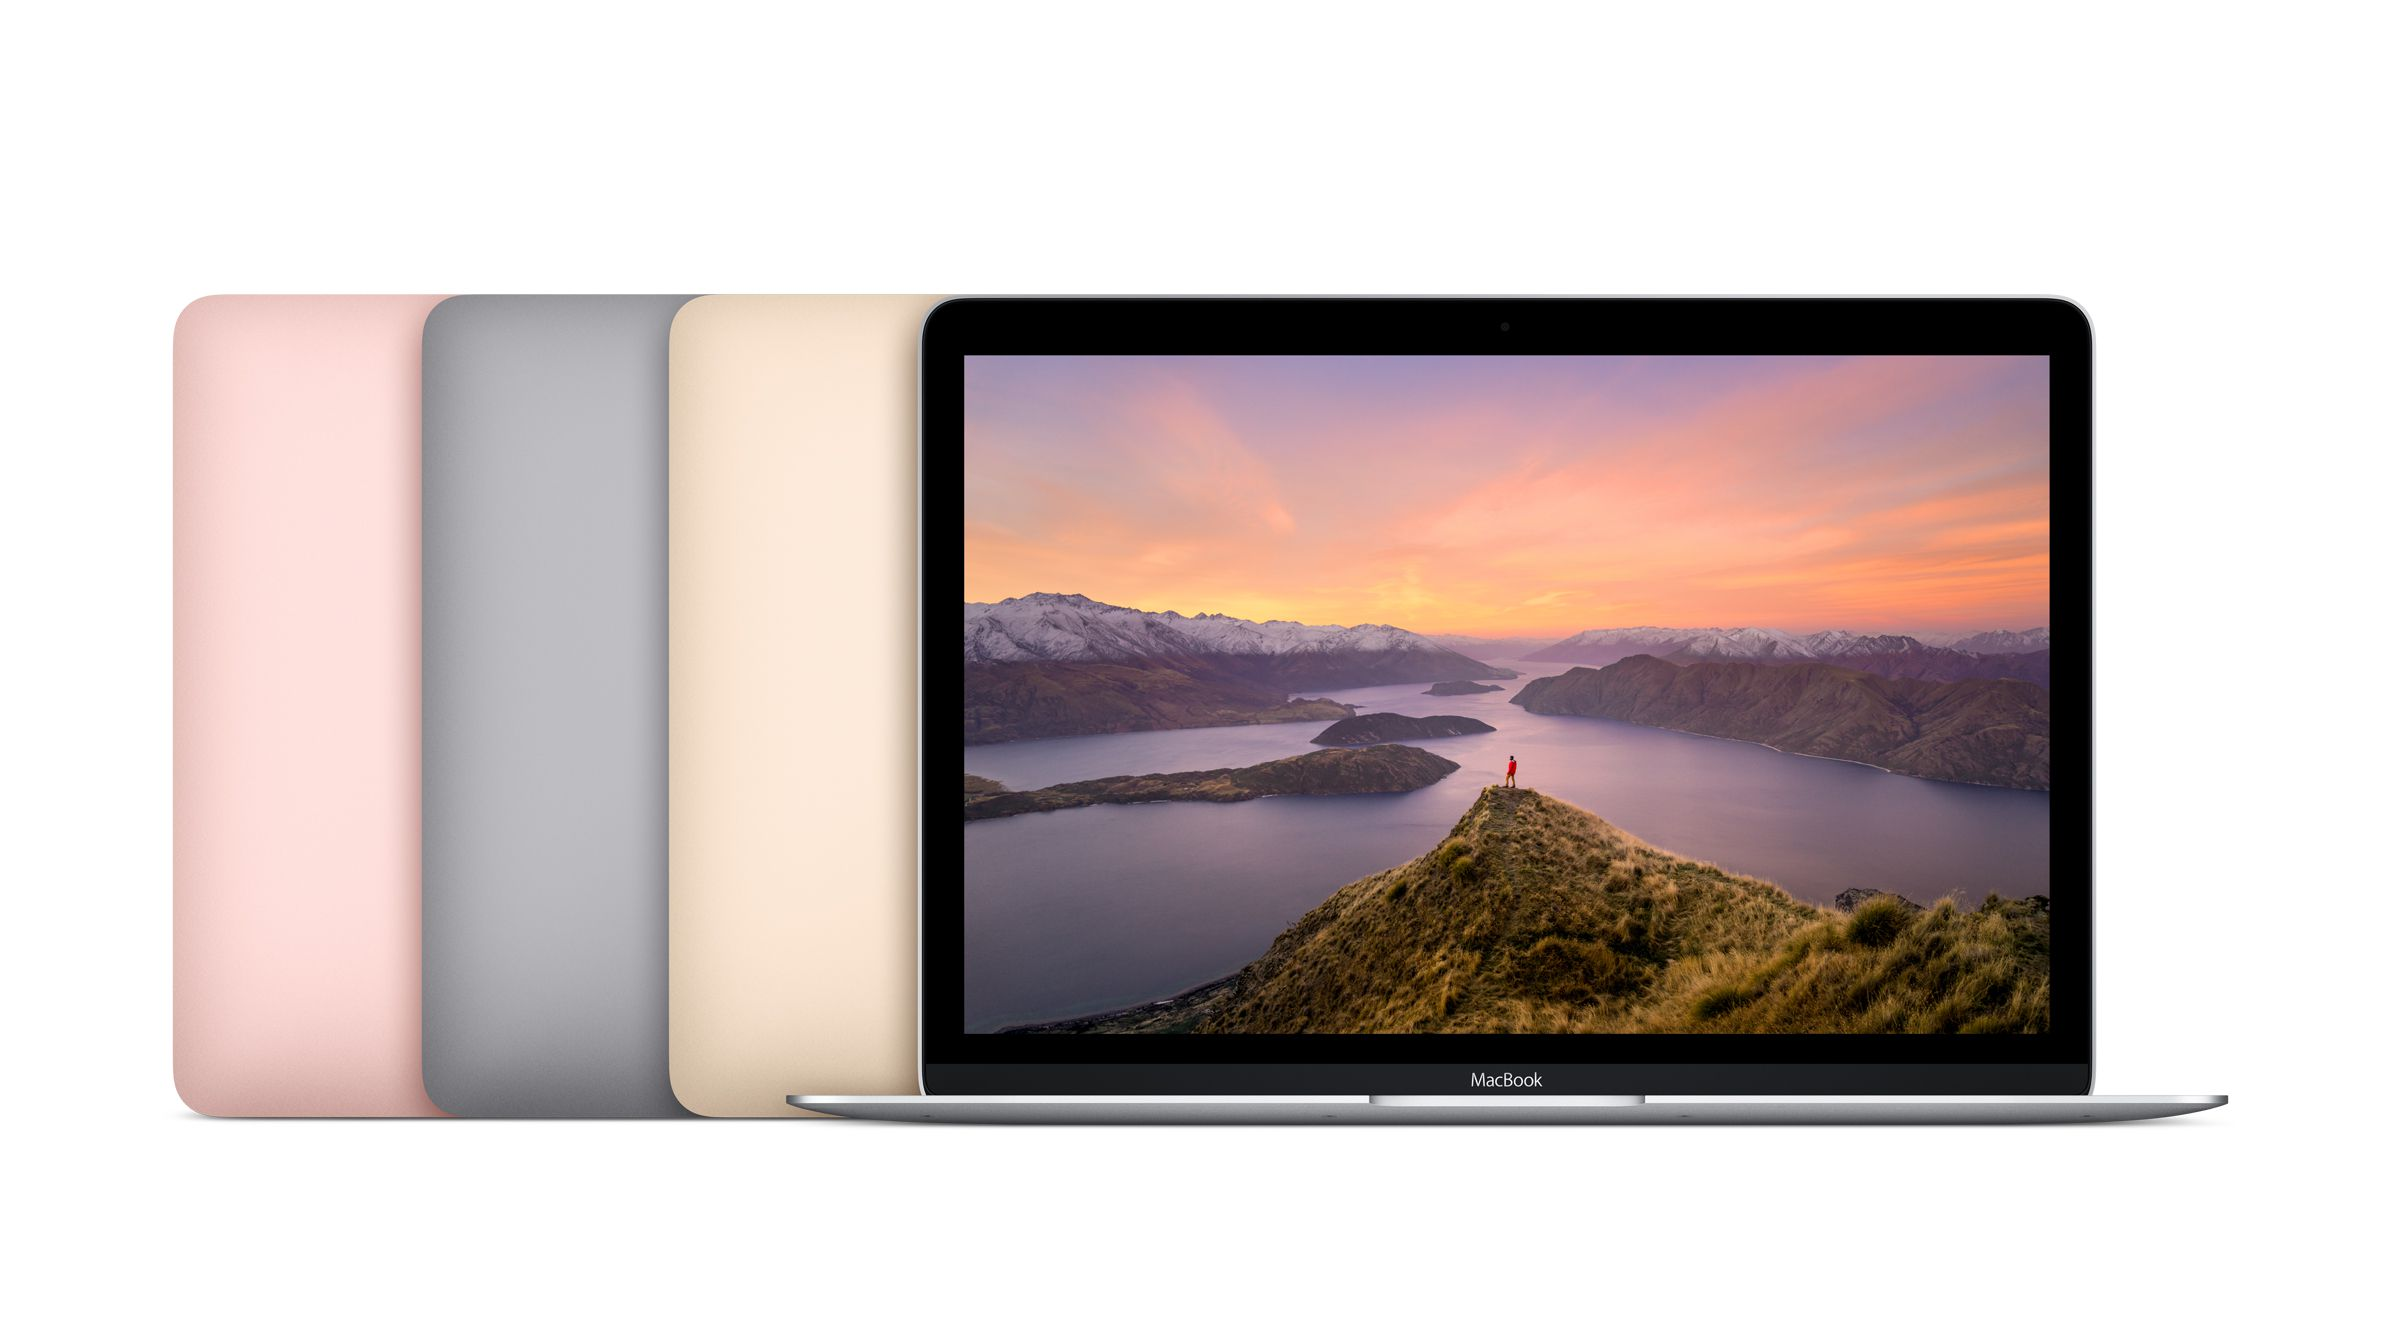 apple 39 s macbook gets faster processors longer battery life and rose gold color the verge. Black Bedroom Furniture Sets. Home Design Ideas